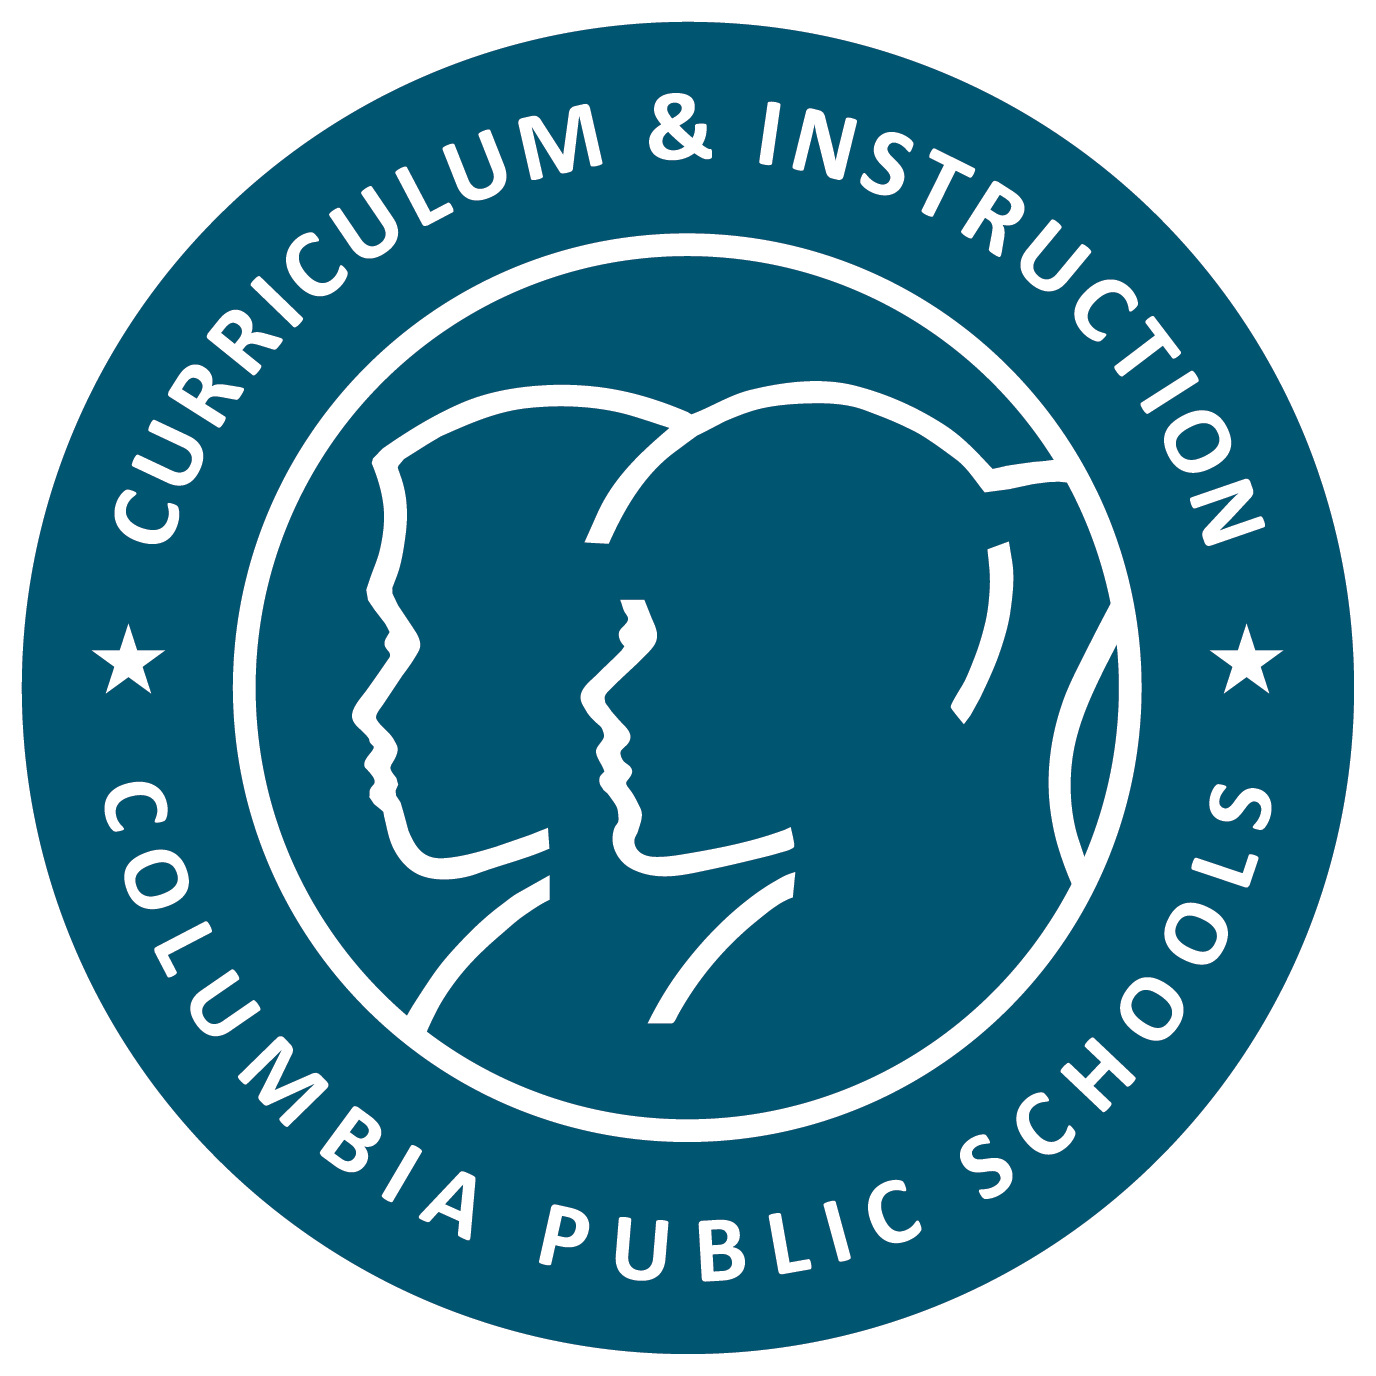 CurriculumInstructionLogo